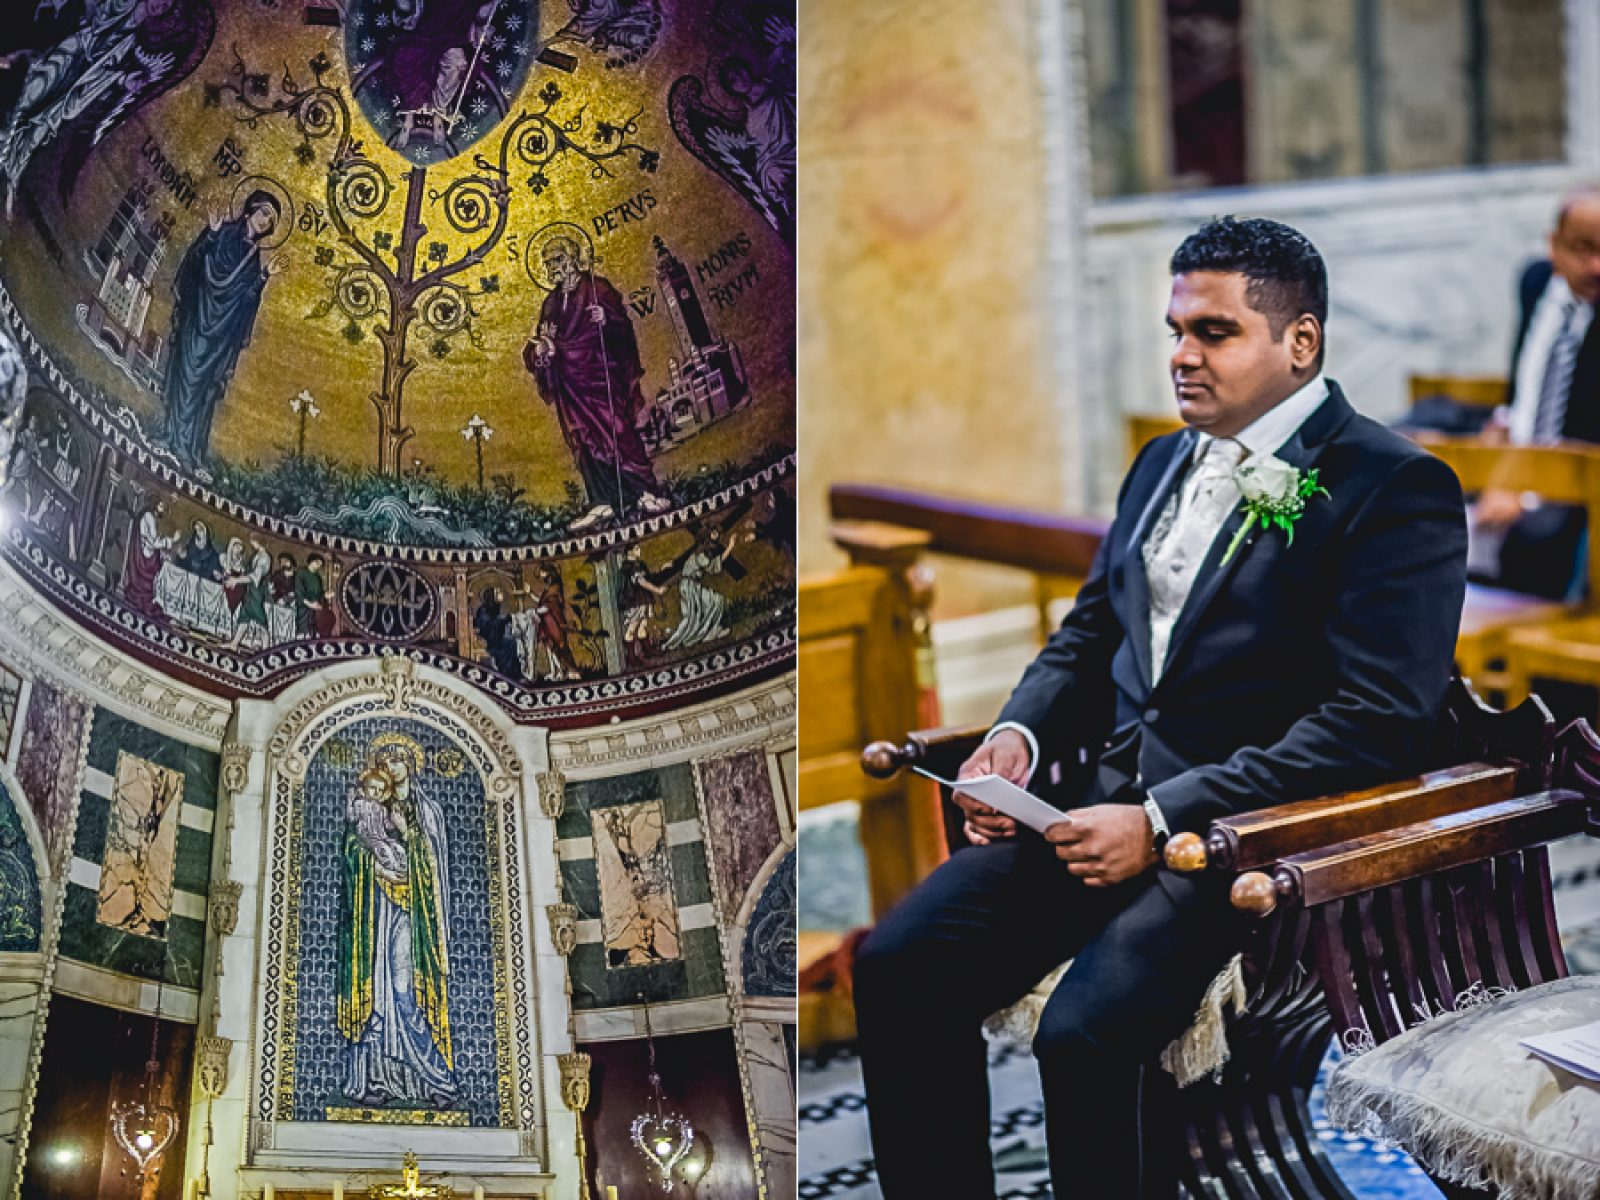 451 1600x1200 - Darshani and Anthony - wedding photographer in London